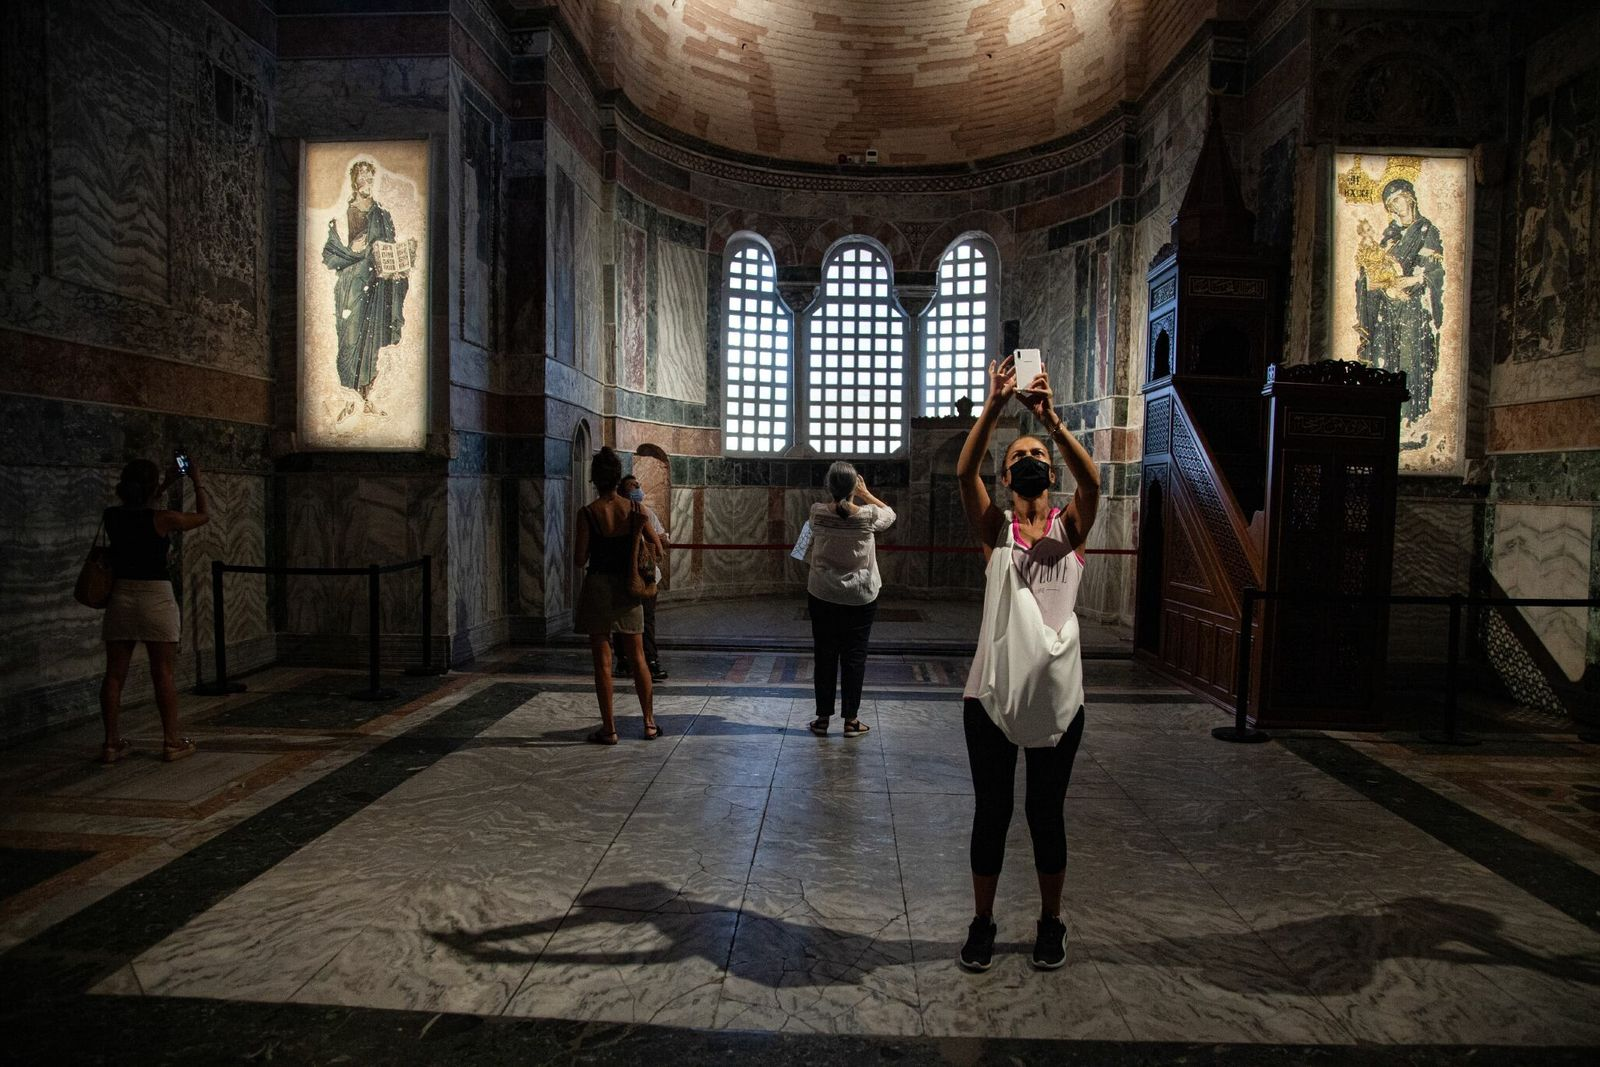 Tourists take photographs in the Byzantine-era Chora Church, which subsequently became a mosque under Ottoman rule ...